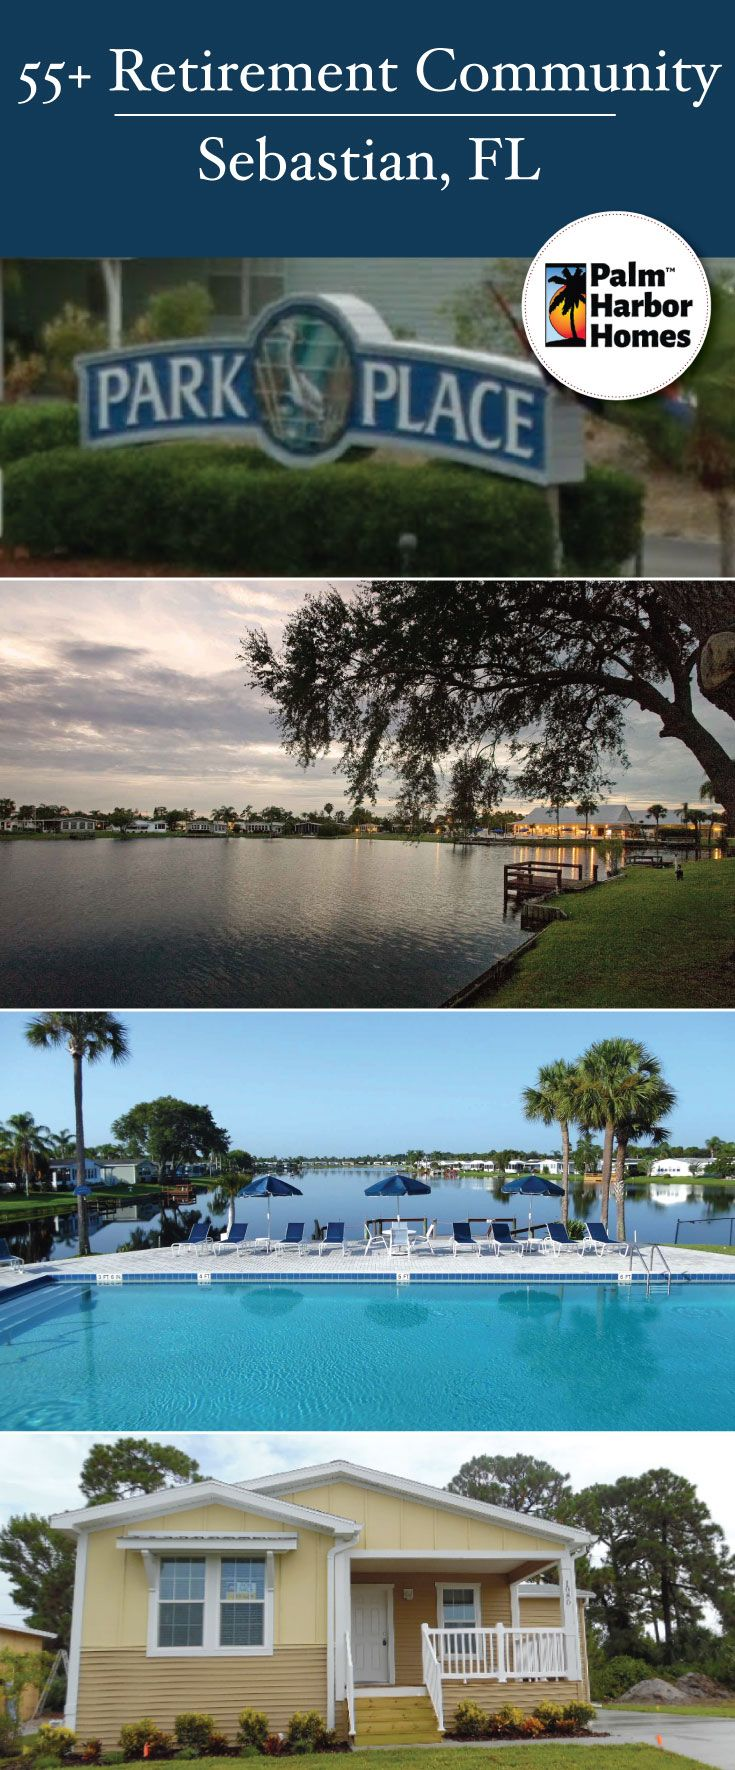 If An Amazing Florida 55 Lifestyle Is Your Dream This Is The Place Park Place A Scenic Treasure Coast 55 Palm Harbor Homes Mobile Home Parks Modular Homes